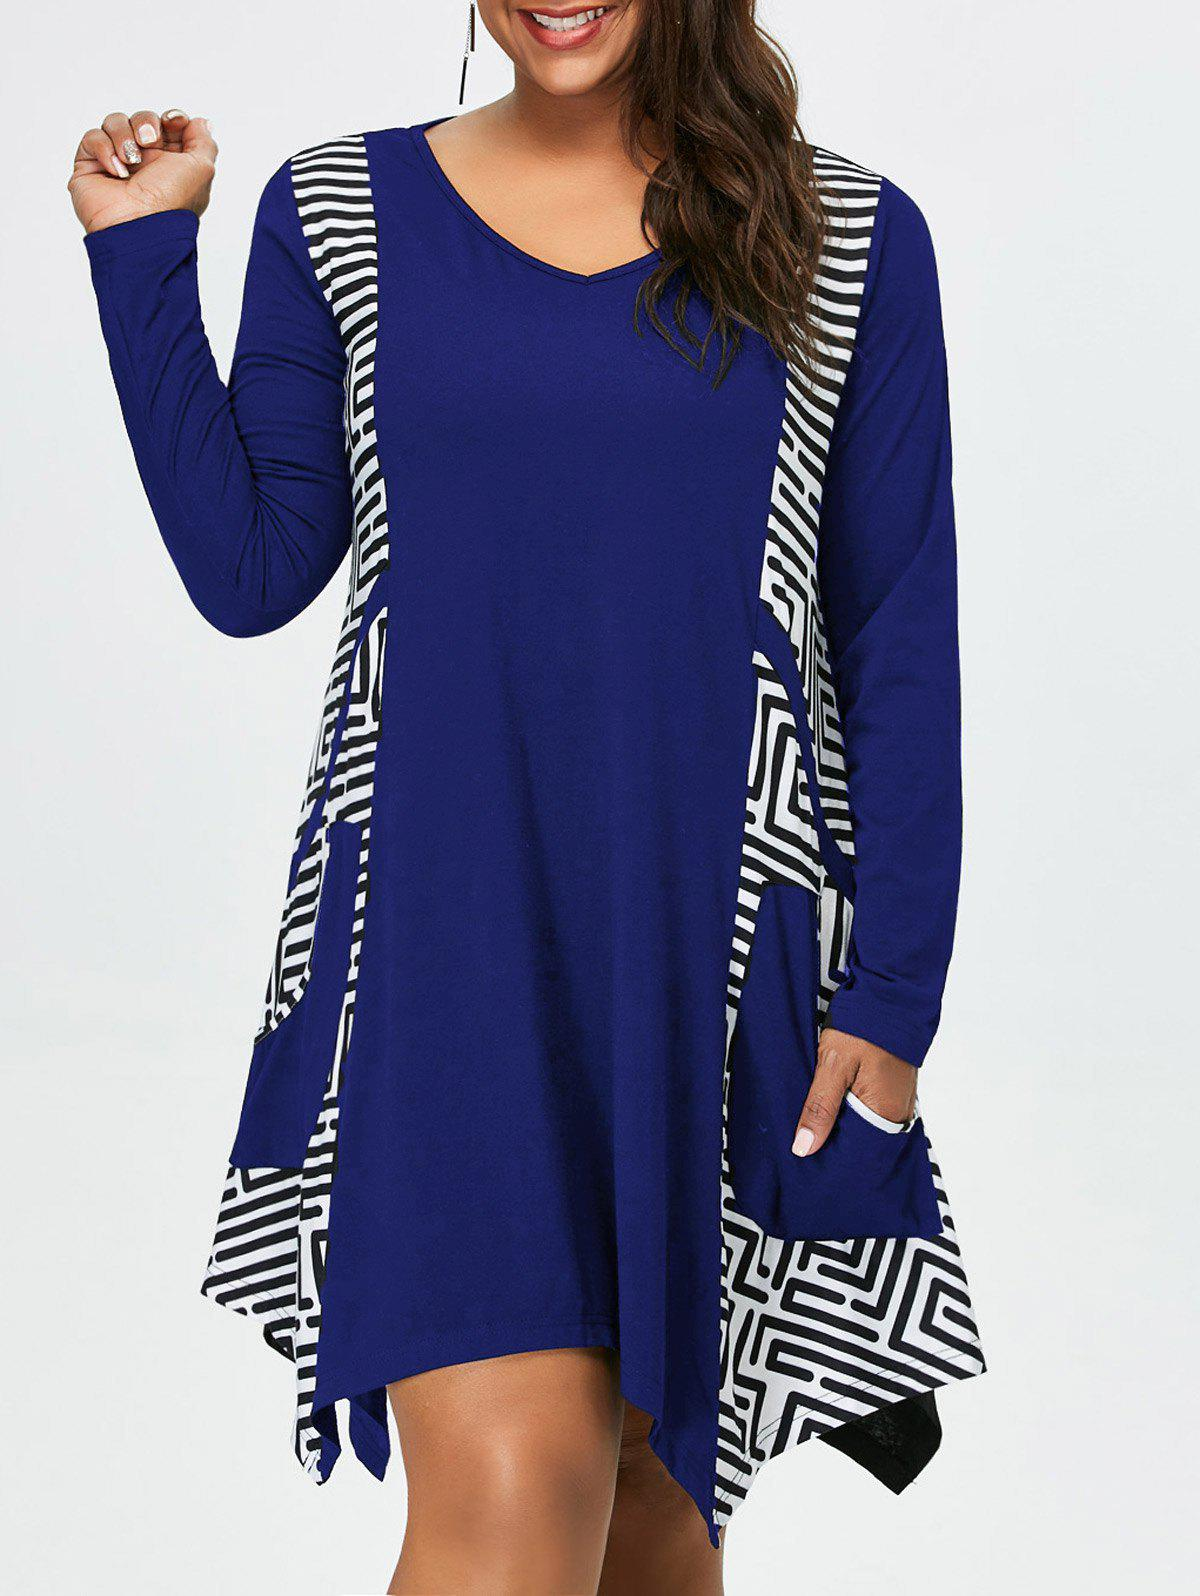 Plus Size Long Sleeve Asymmetrical Tee Dress with Pockets plus size floral embroidery tee dress with pockets